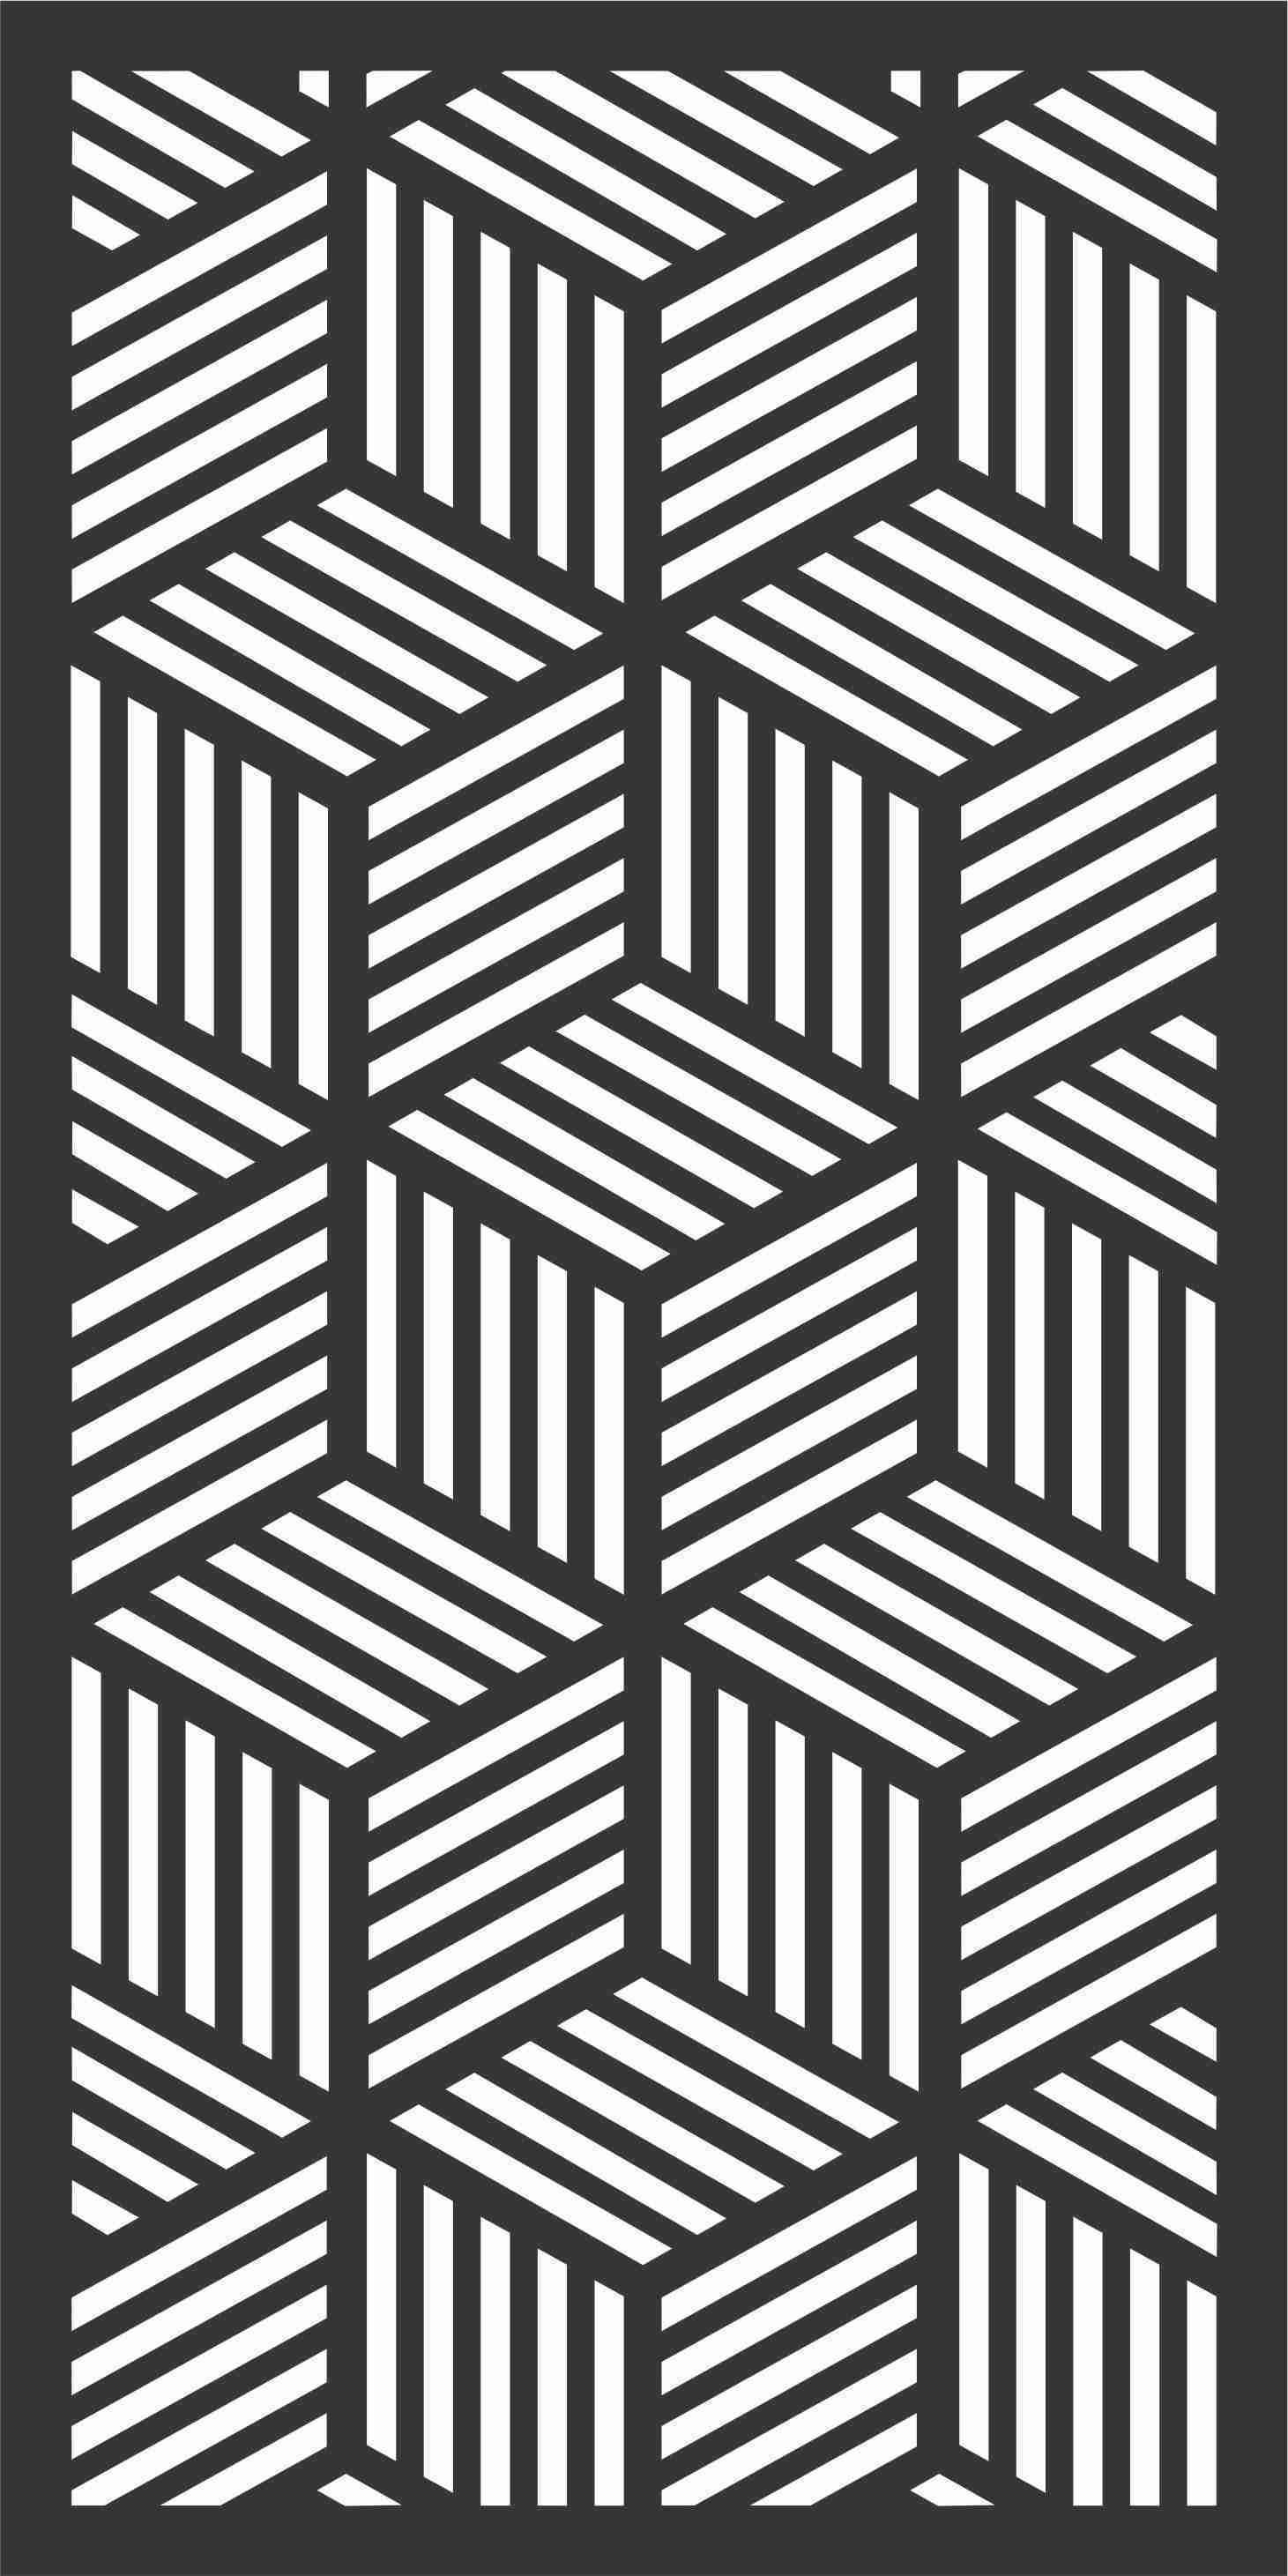 Decorative Screen Patterns For Laser Cutting 178 Free DXF File